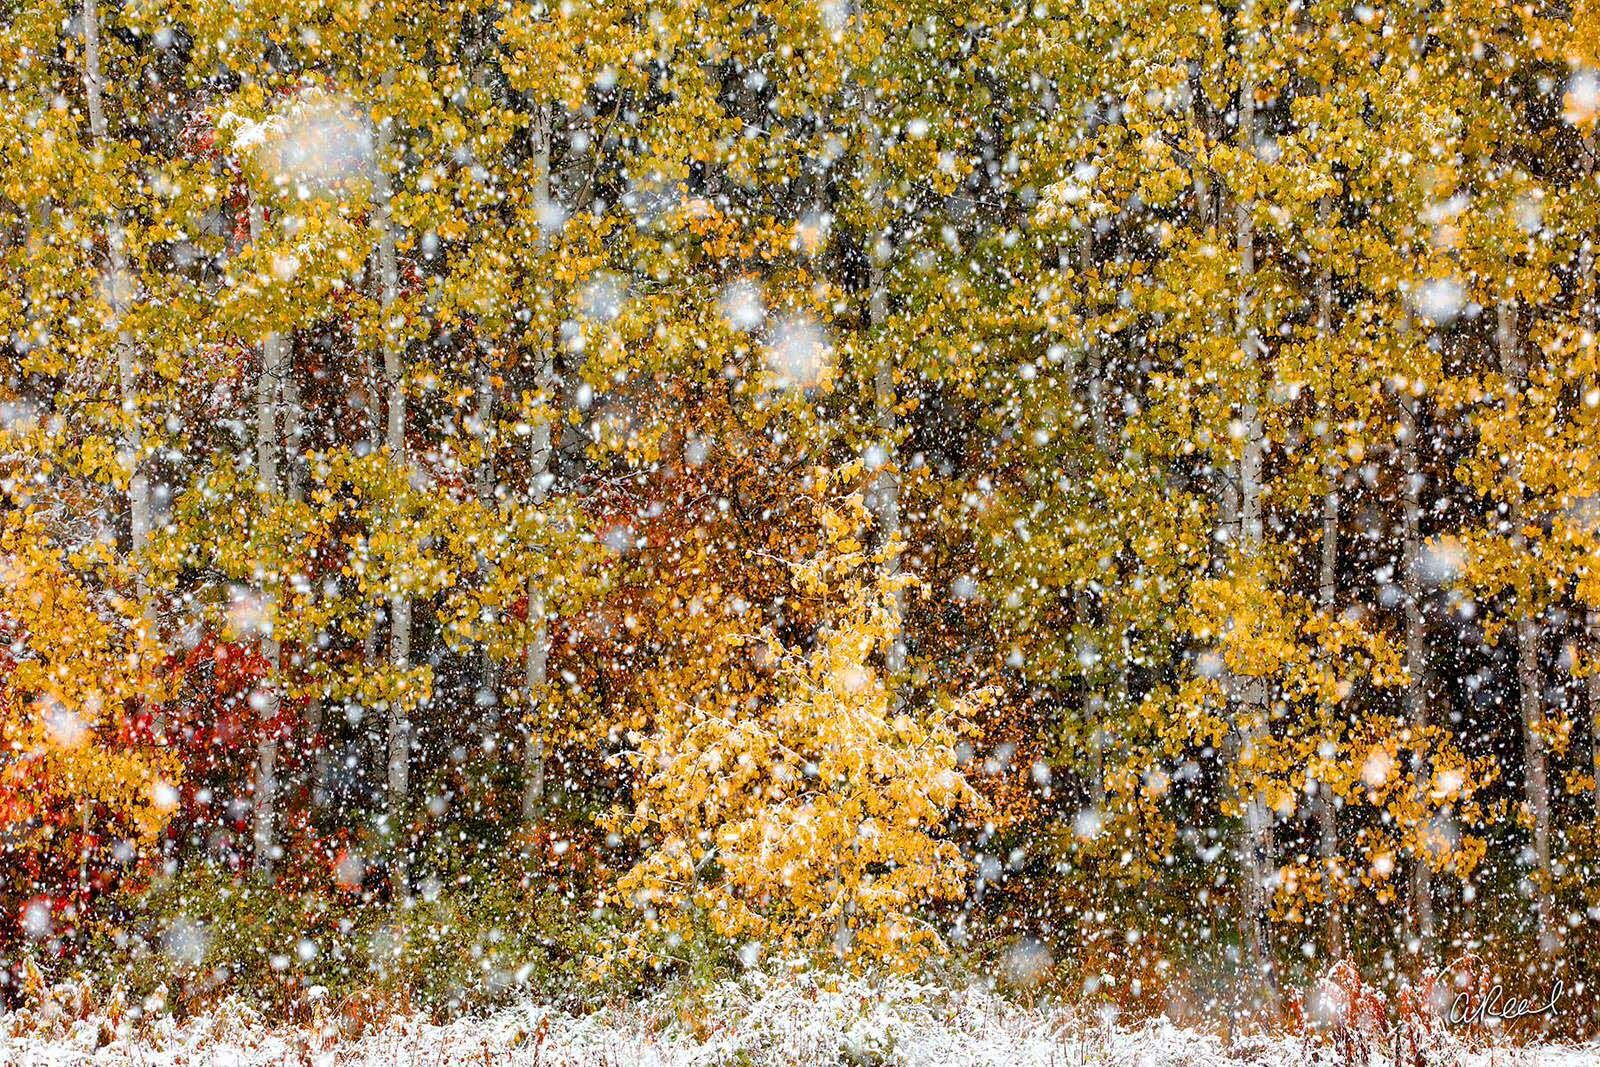 Snowflakes, Snowfall, Climate, Winter, Cold, Snow, Trees, Autumn, Drift, Snowpack, Fine Art, Limited Edition, photo